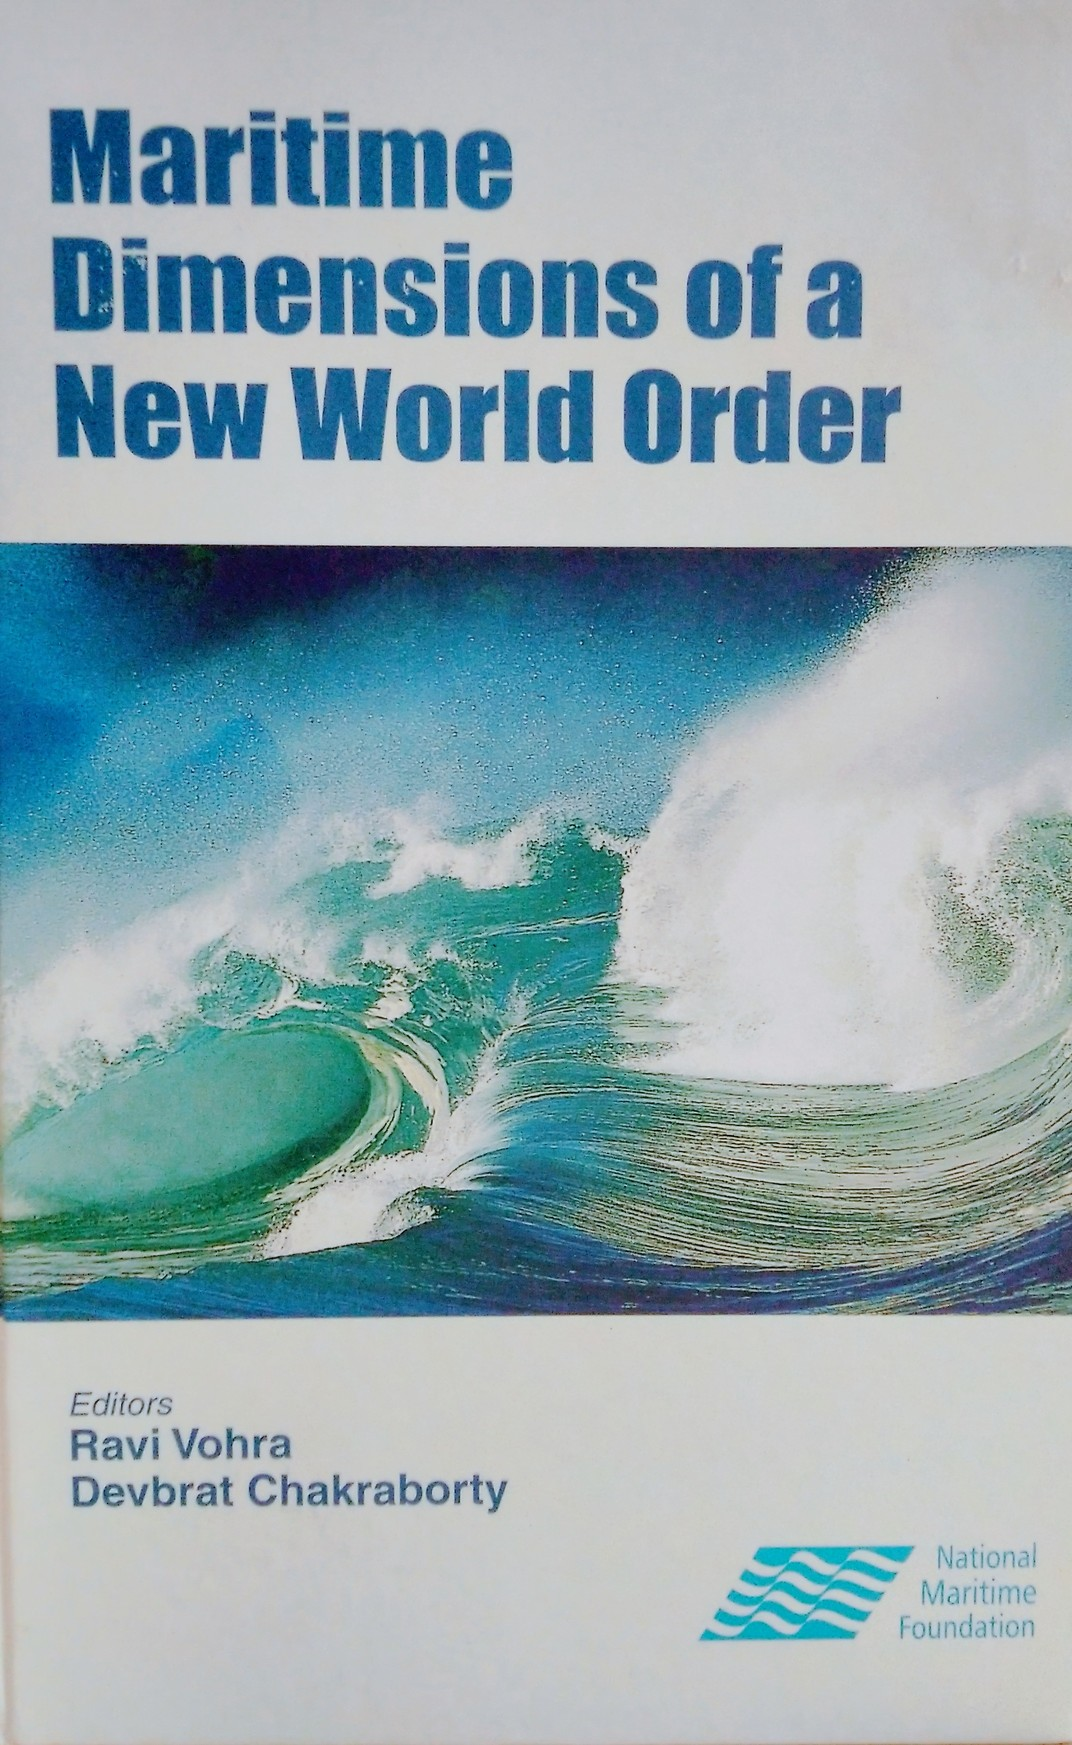 MARITIME DIMENSIONS OF A NEW WORLD ORDER